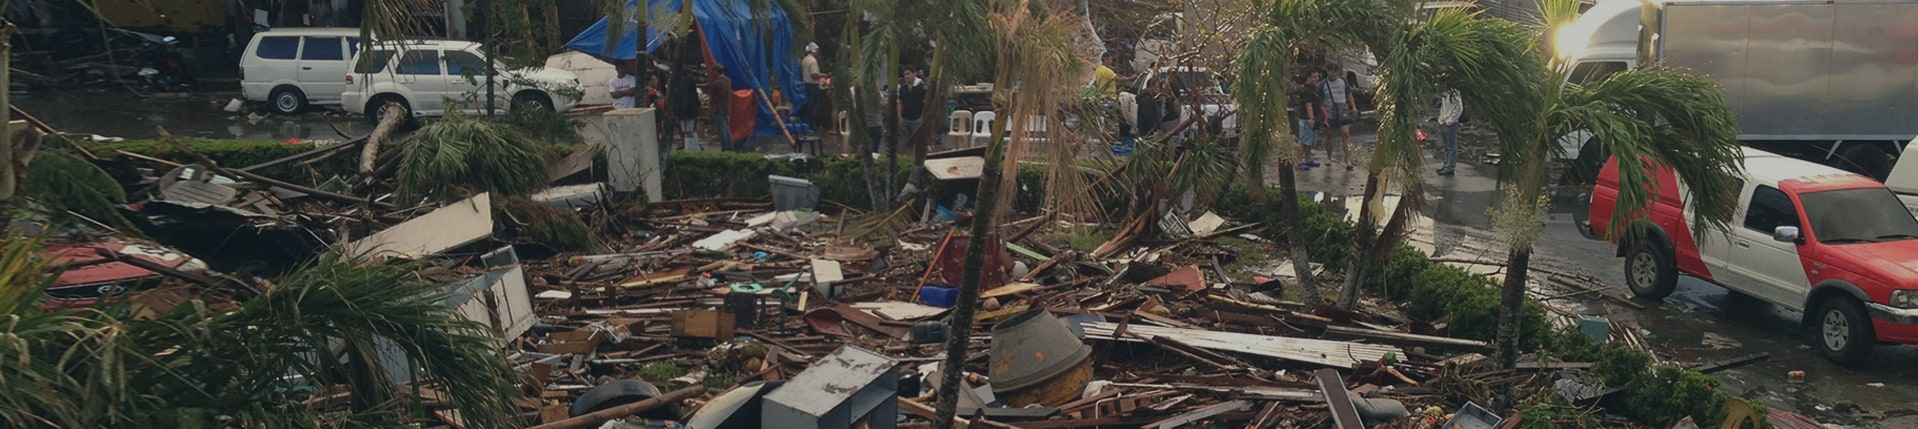 Discover how PMI's disaster and emergency relief support helps communities around the world rebuild after a crisis